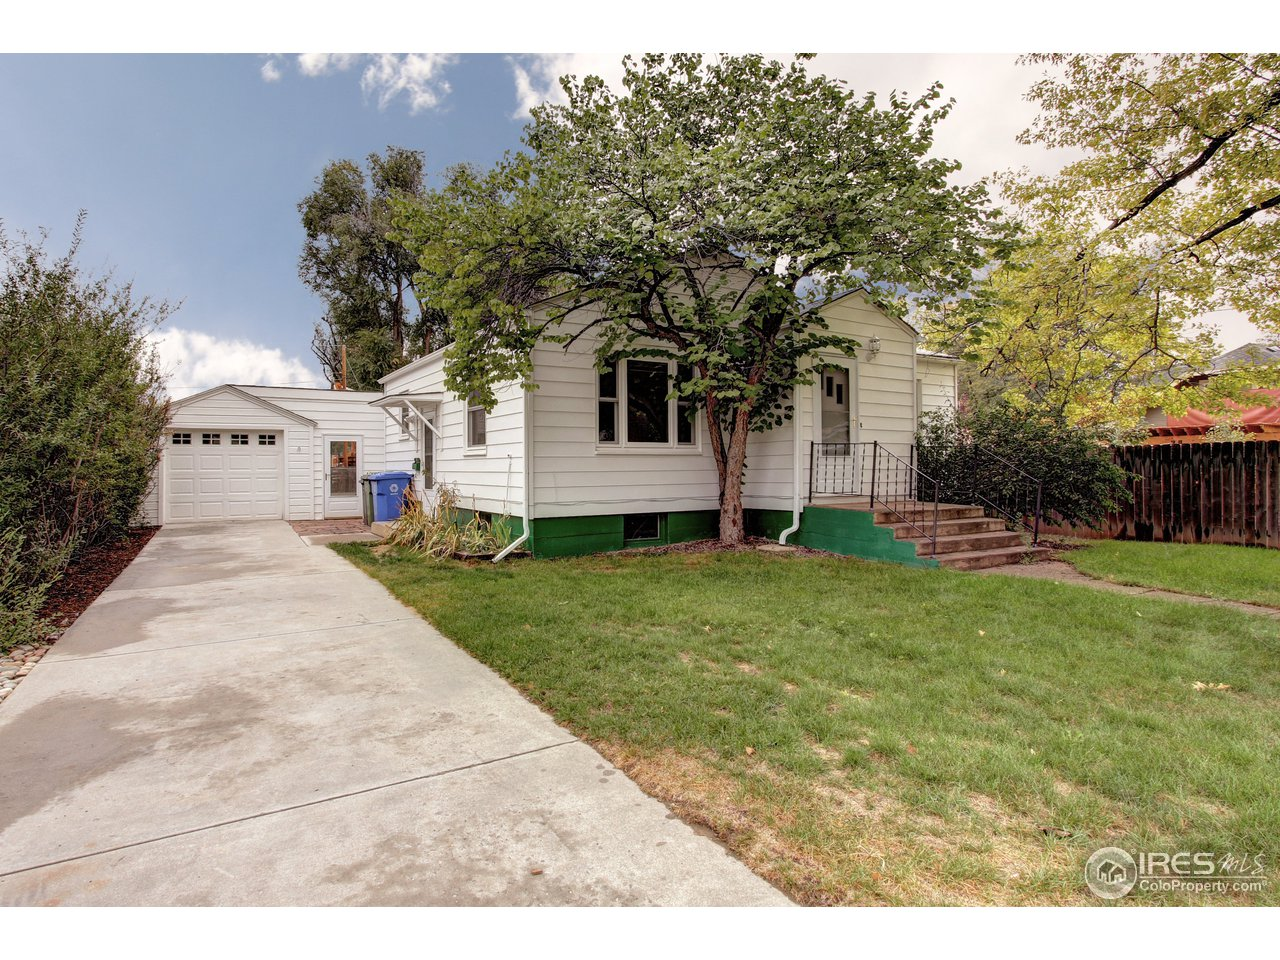 815 W 7th St, Loveland CO 80537